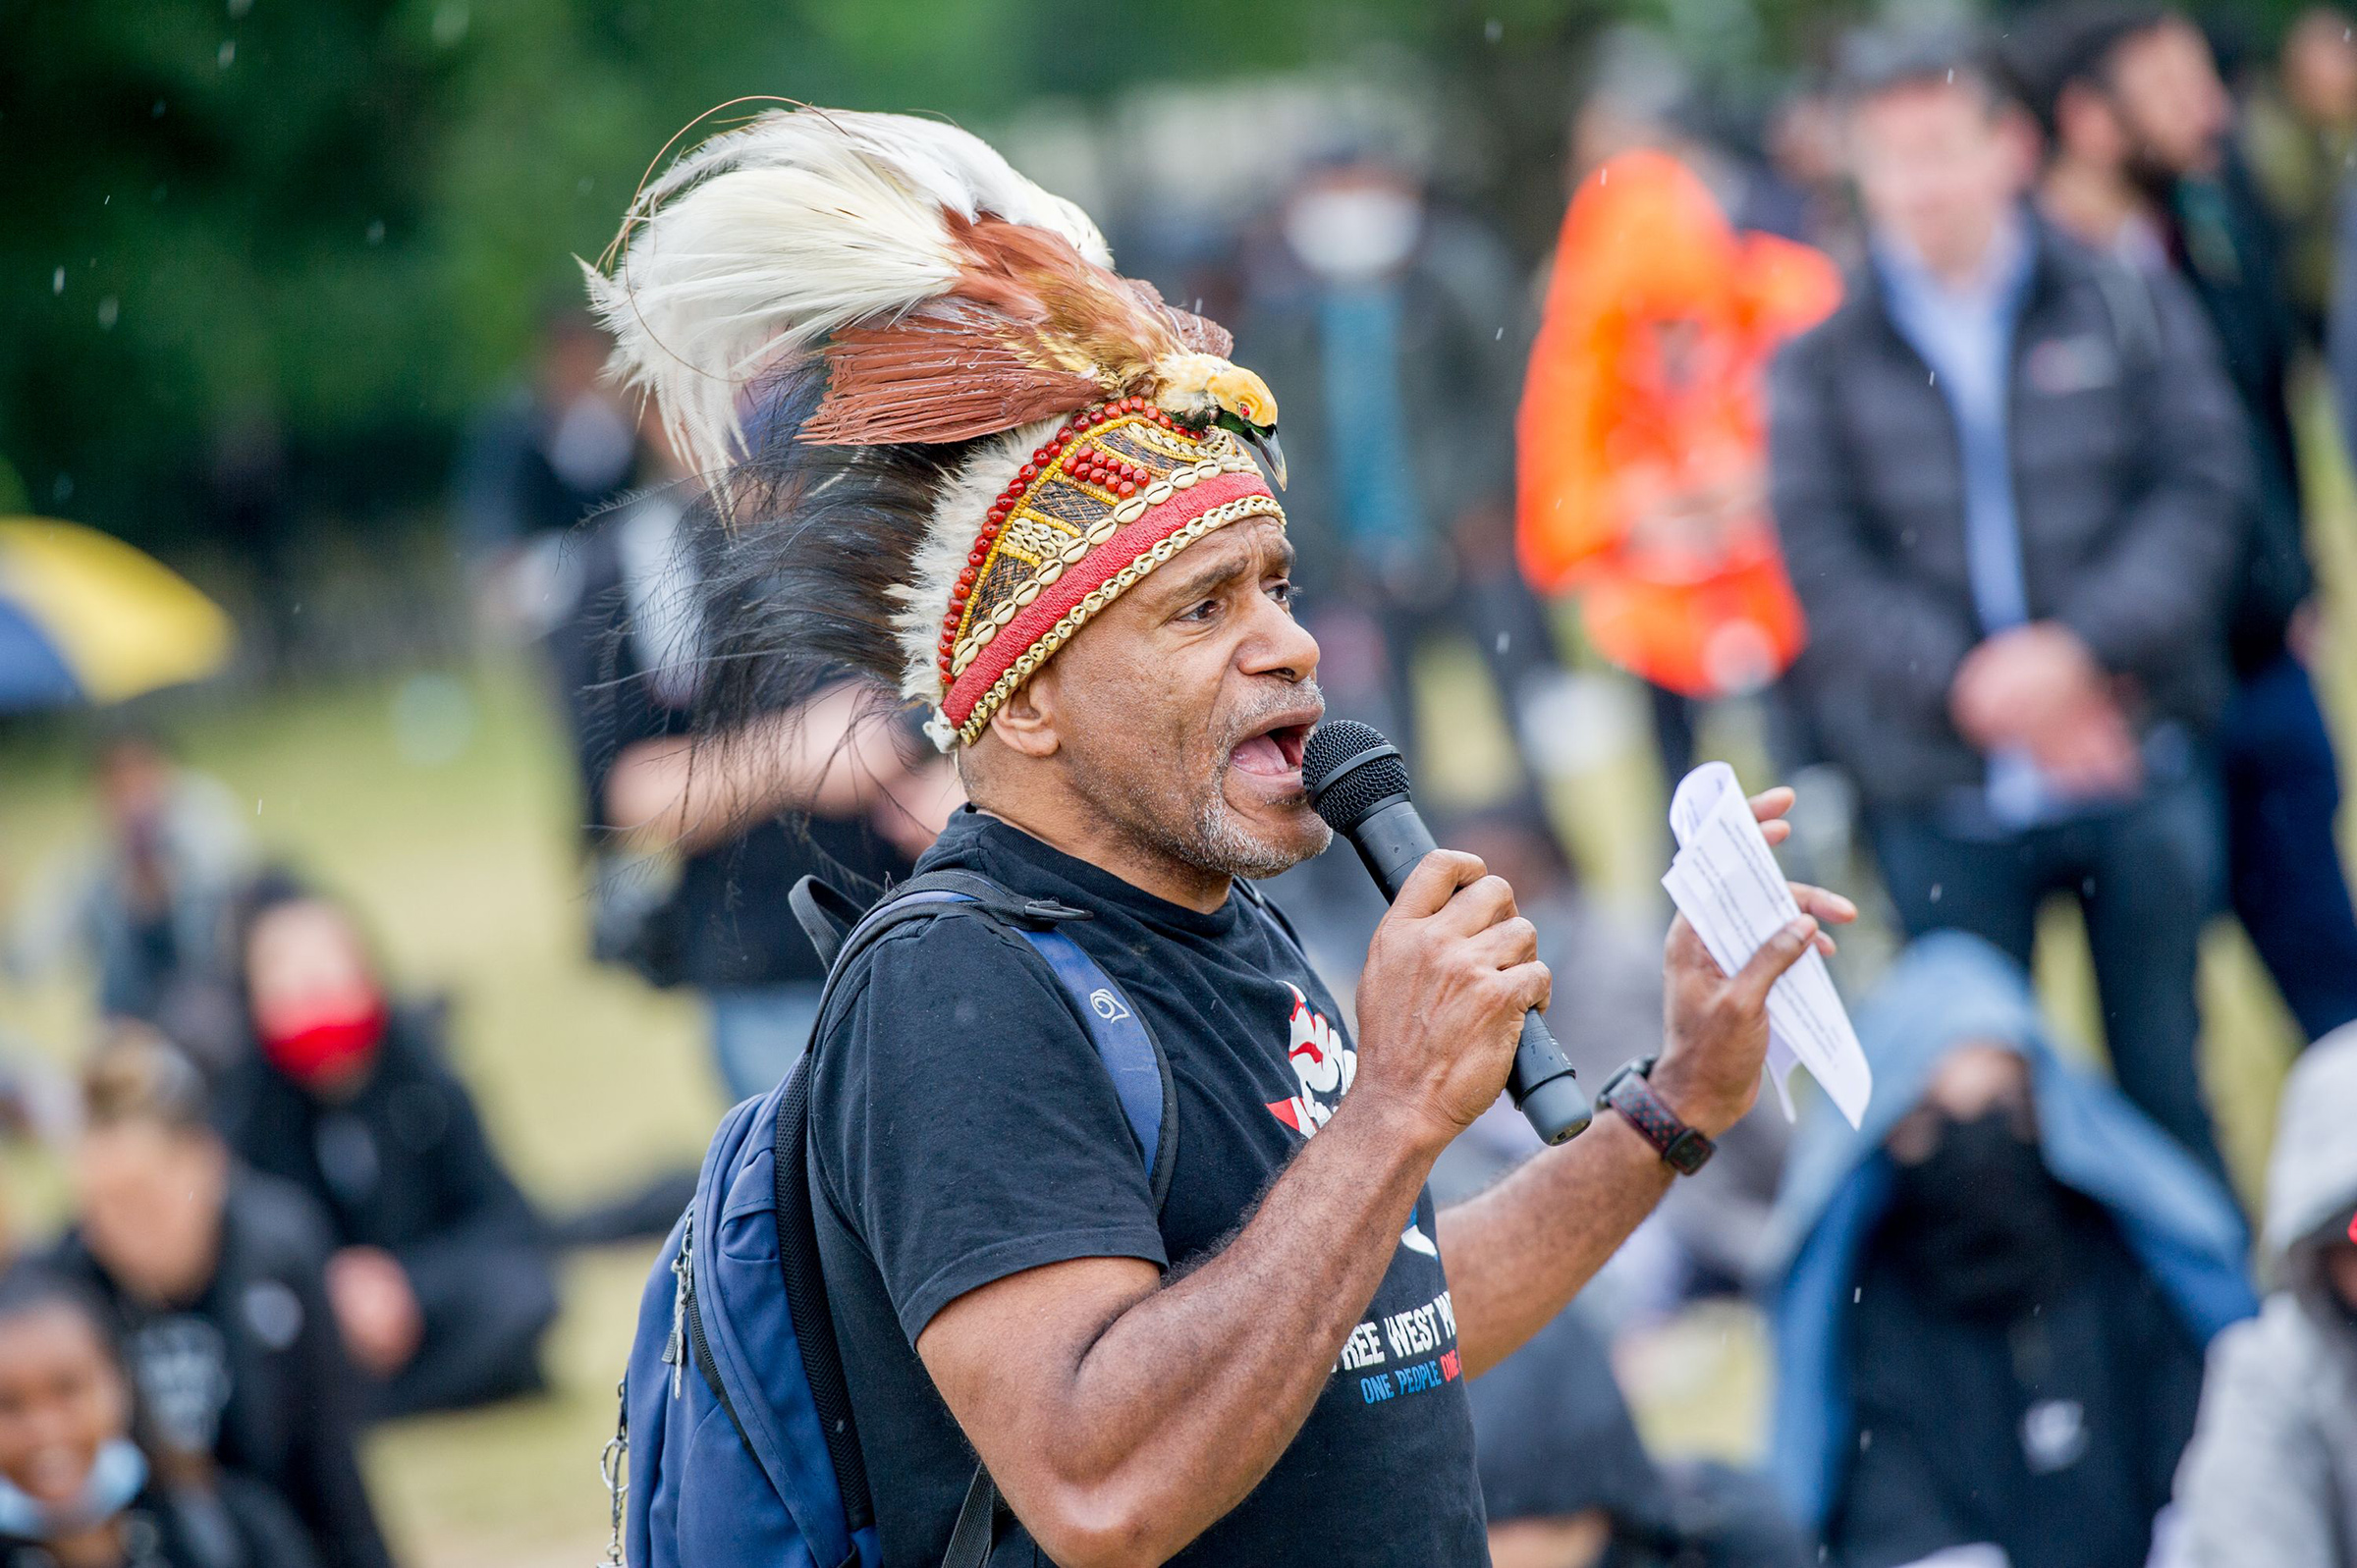 Benny Wenda participates in a Black Lives Matter protest at Hyde Park in response to the death of George Floyd on June 12